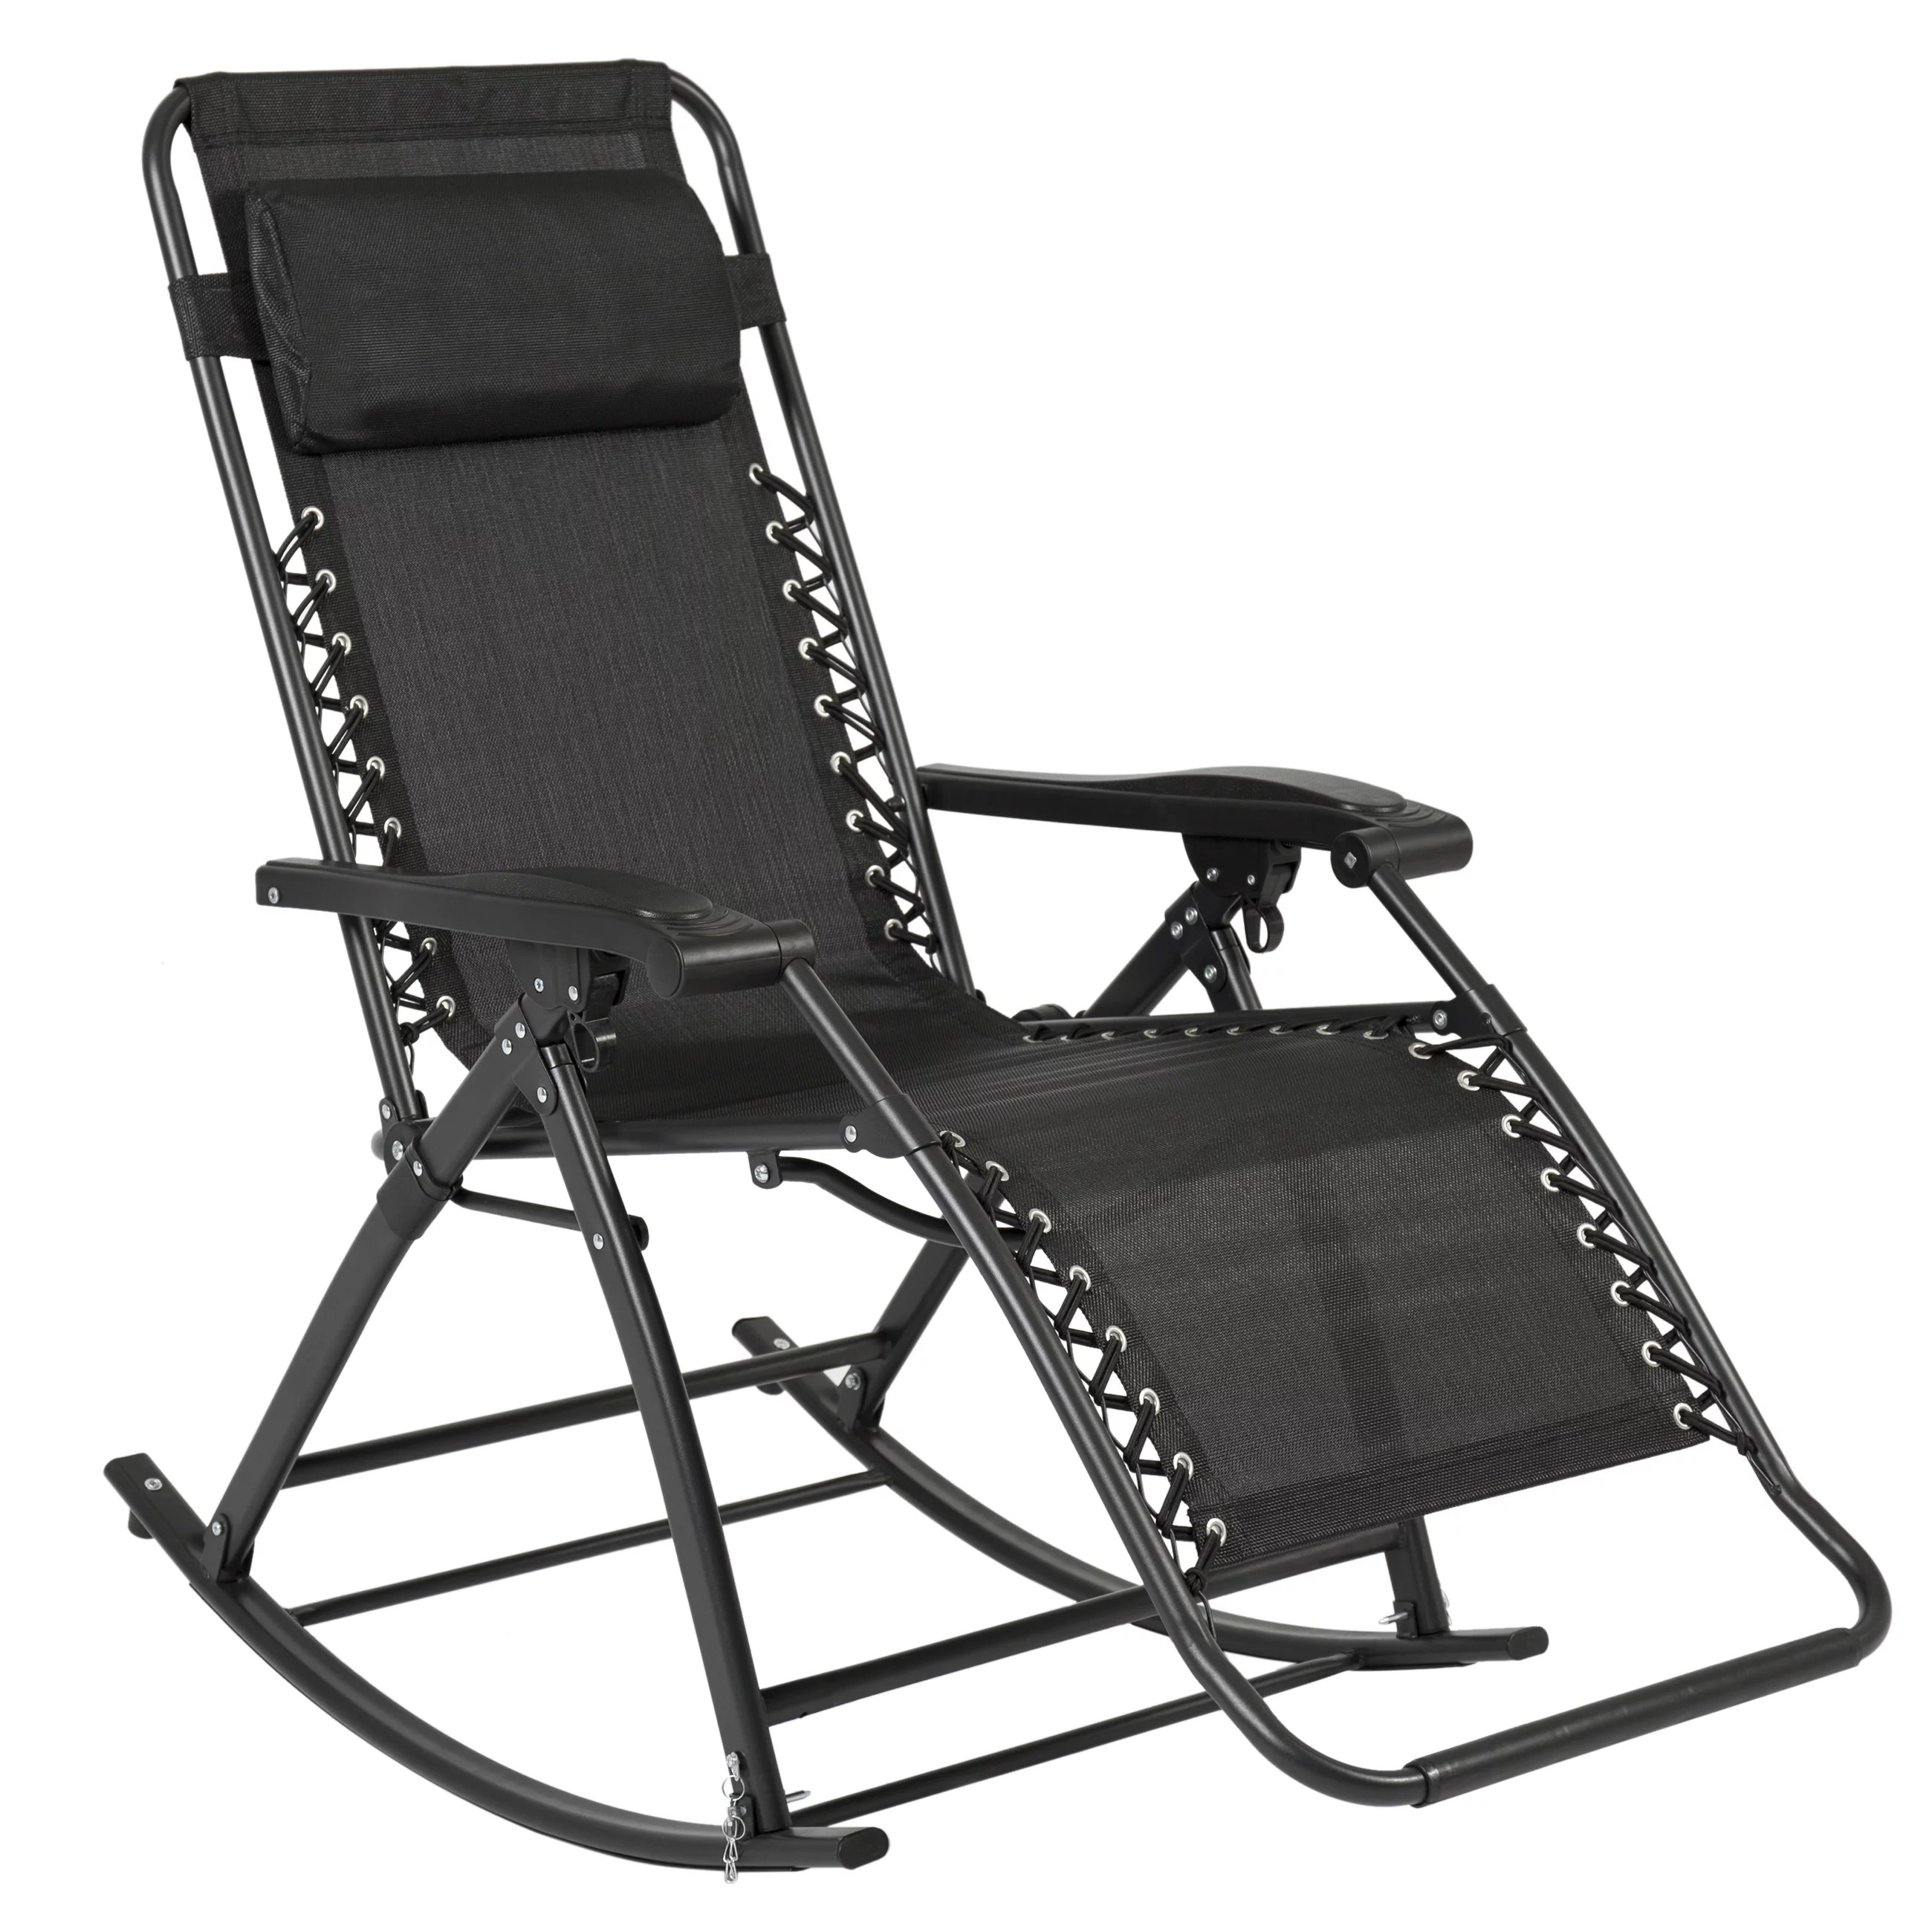 recliner lawn chairs folding chair with stool best choice products foldable zero gravity rocking patio walmart com